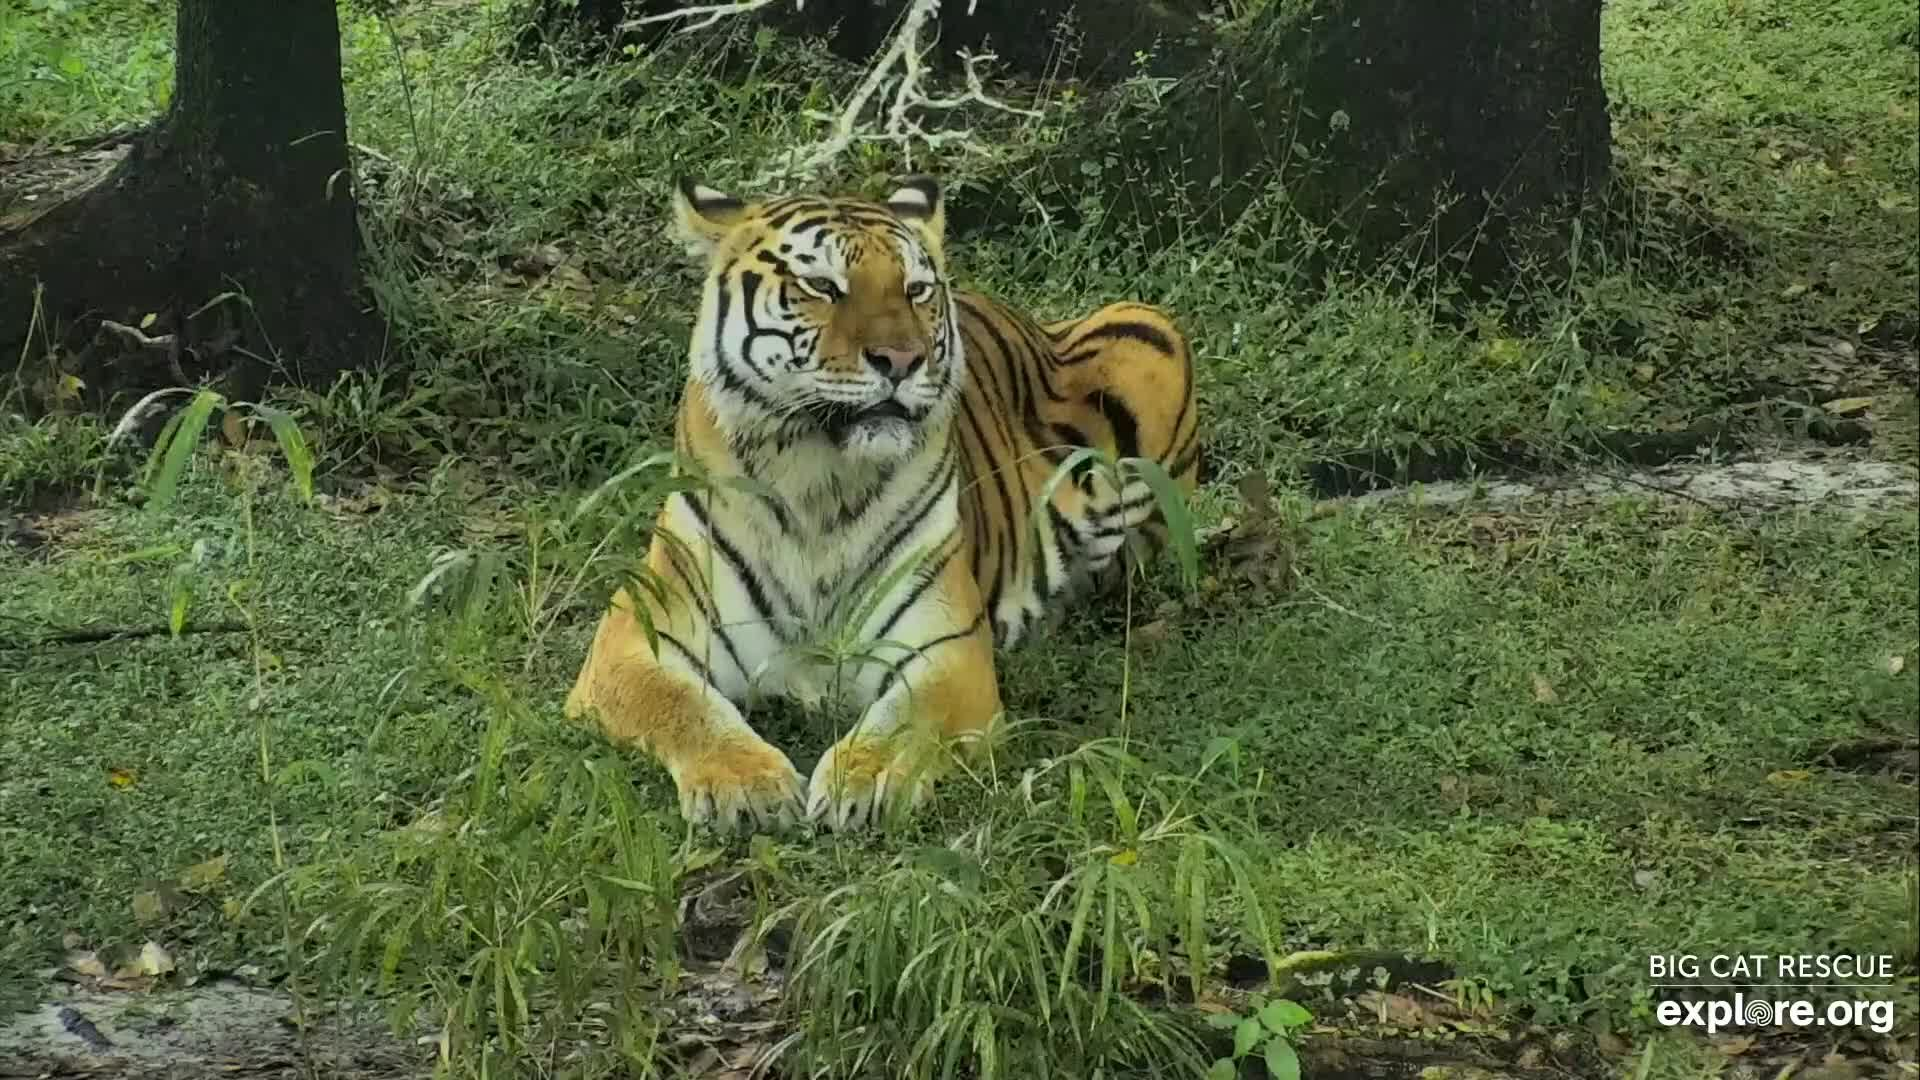 I M Watching The Big Cat Rescue Cam Streaming Live On Explore Org Big Cat Rescue Snapshots Cat Rescue